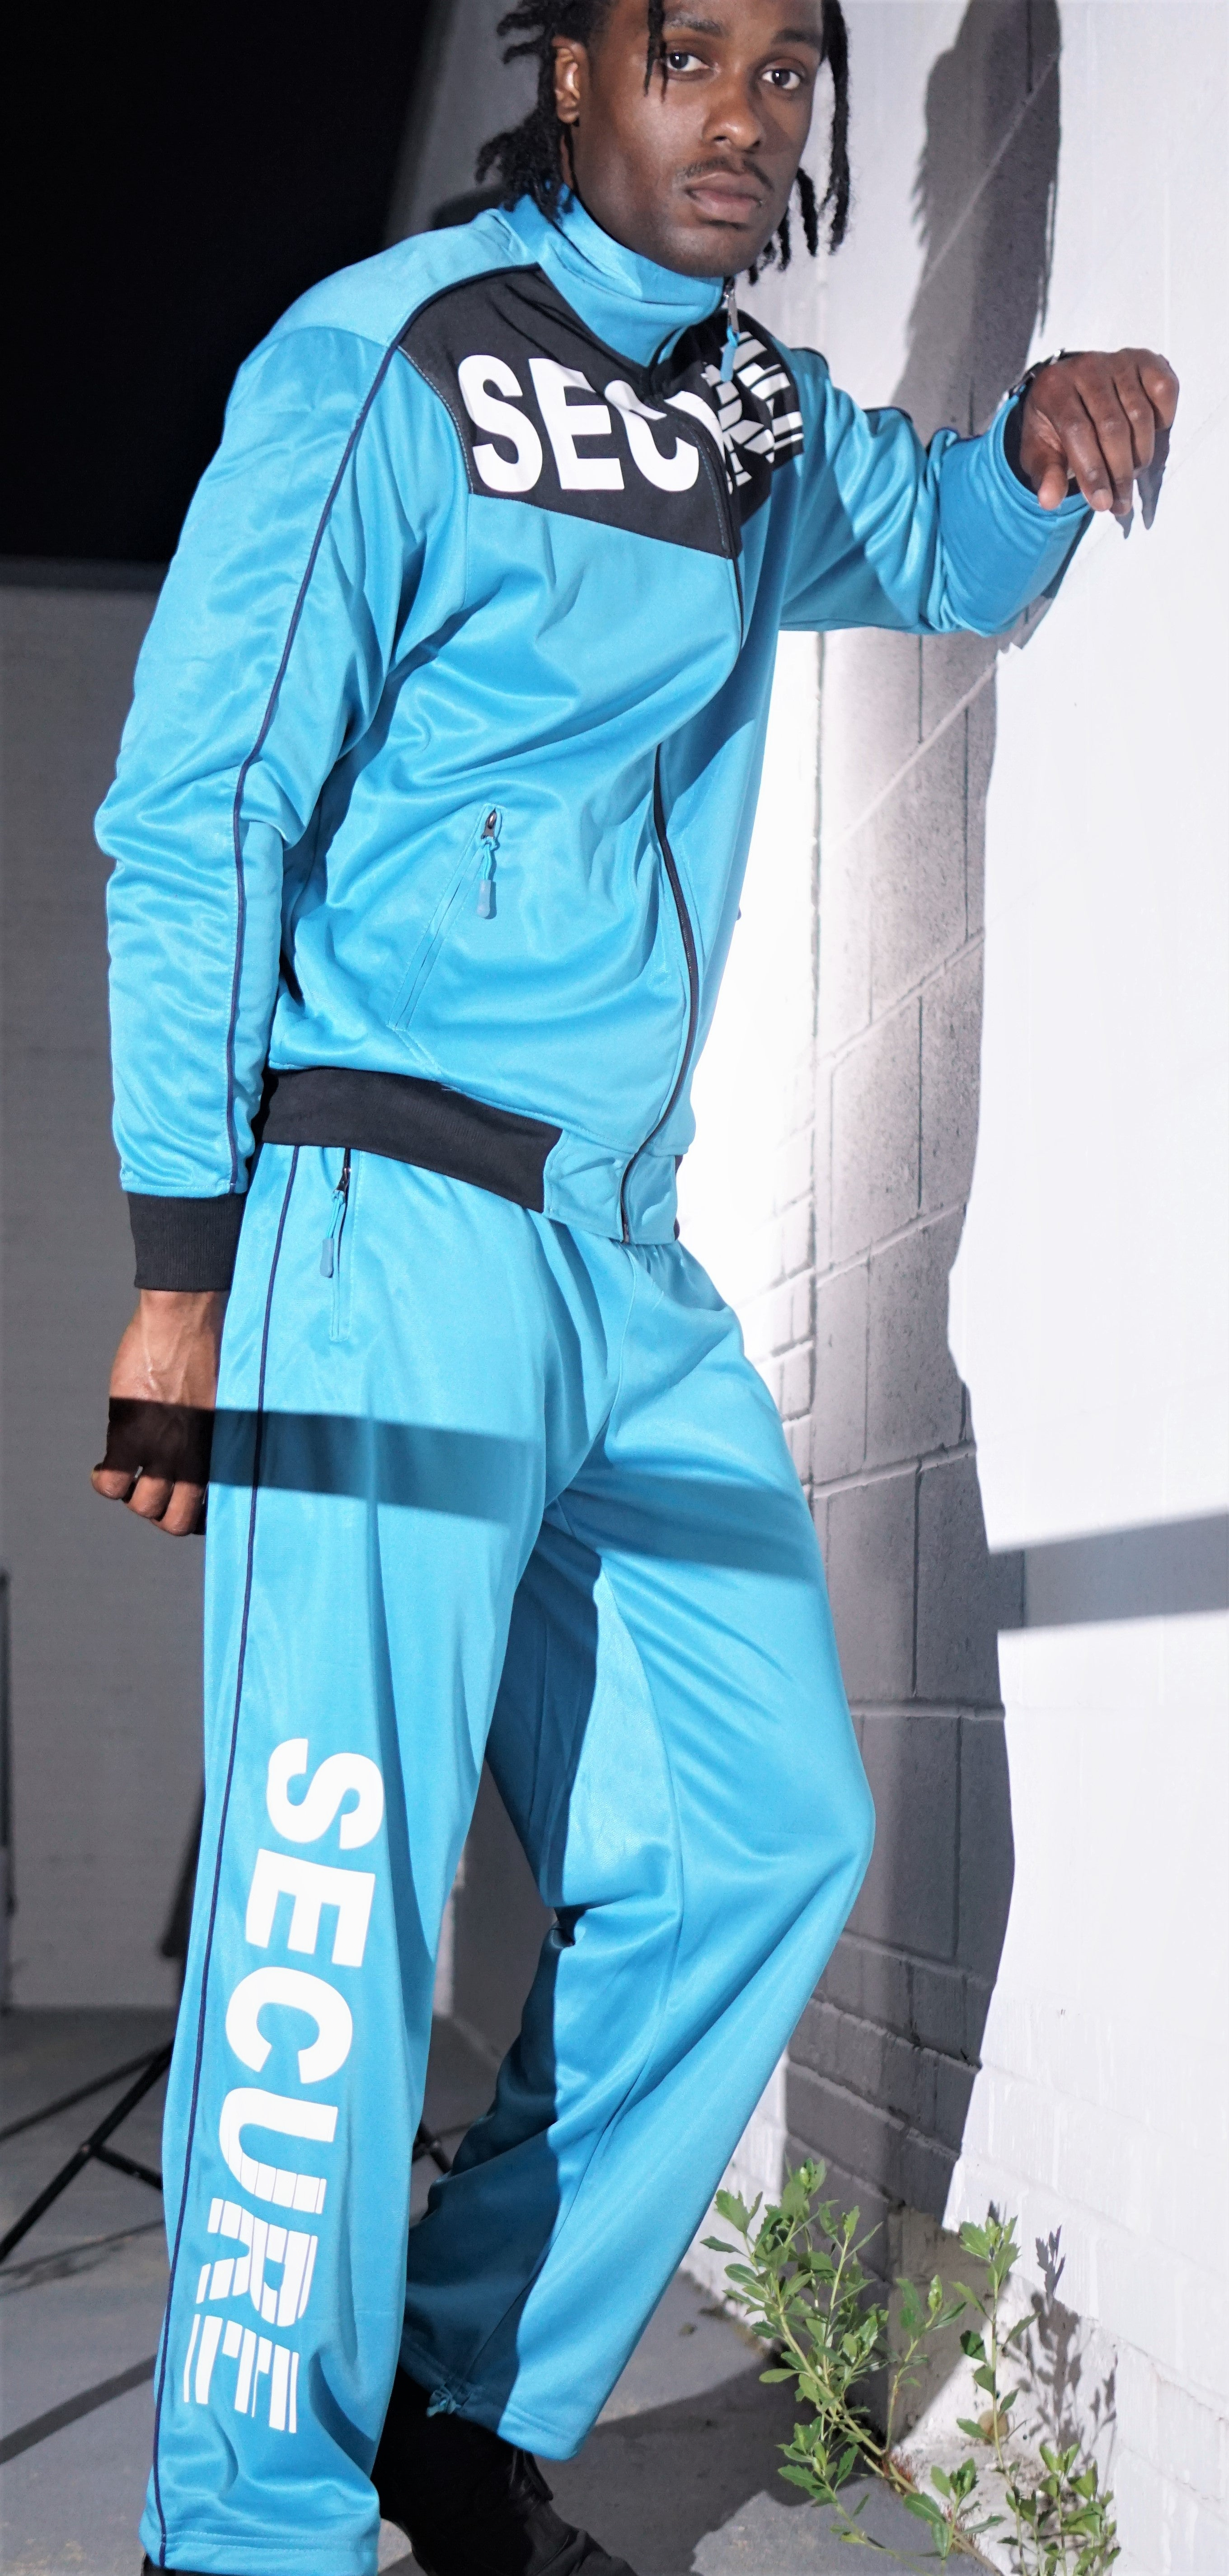 Zip Line Winbreaker Suit - Secure Cultures